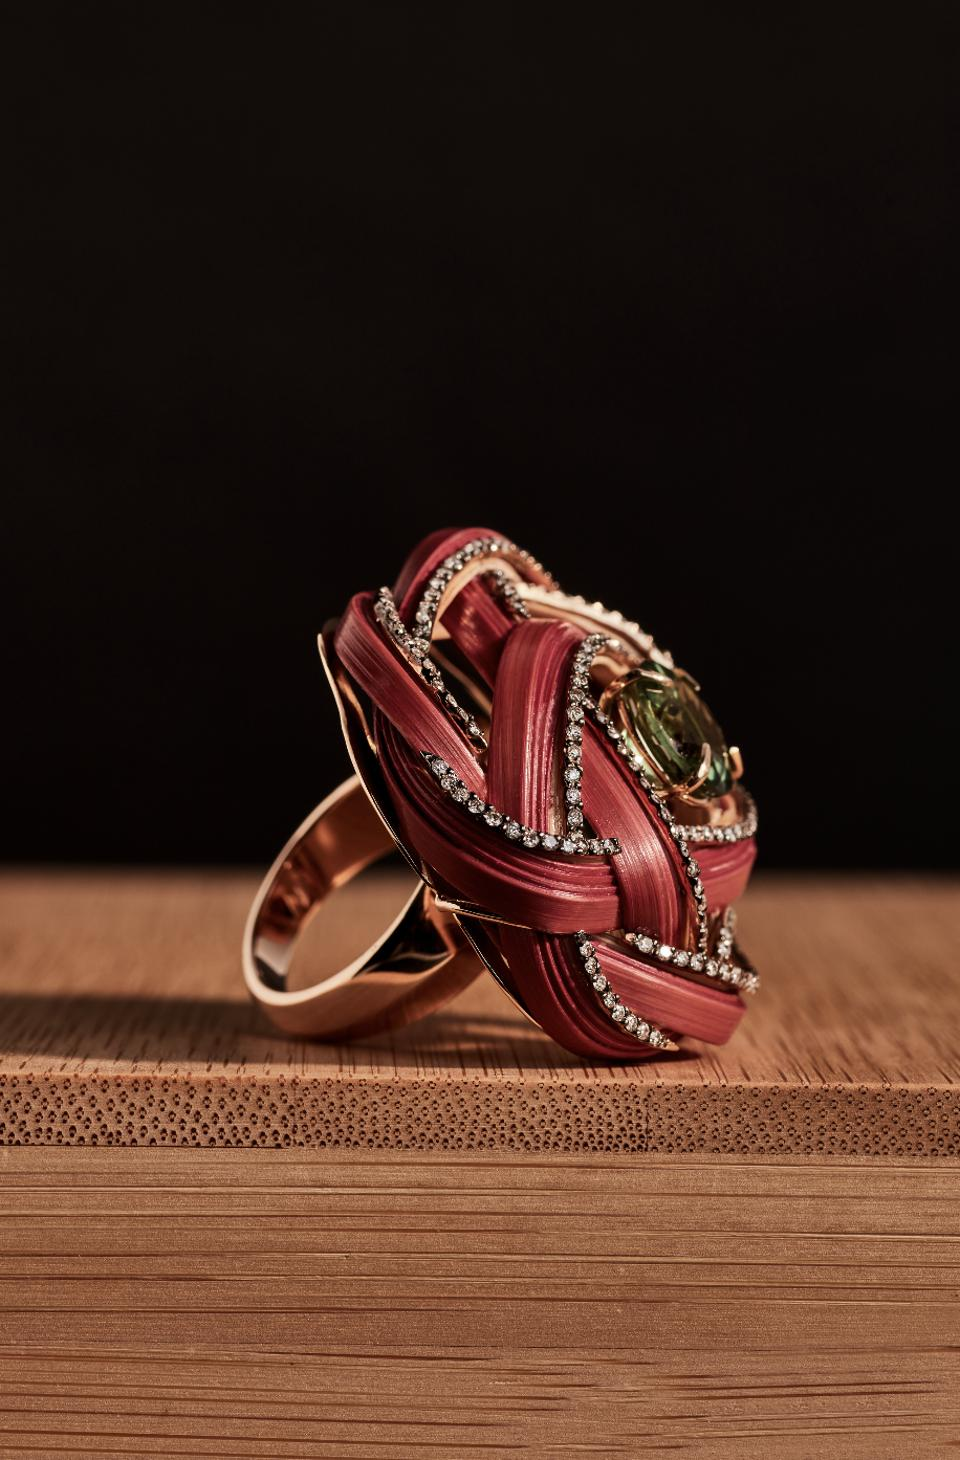 This ring shows the delicate craftsmanship and mix of bamboo and precious gems